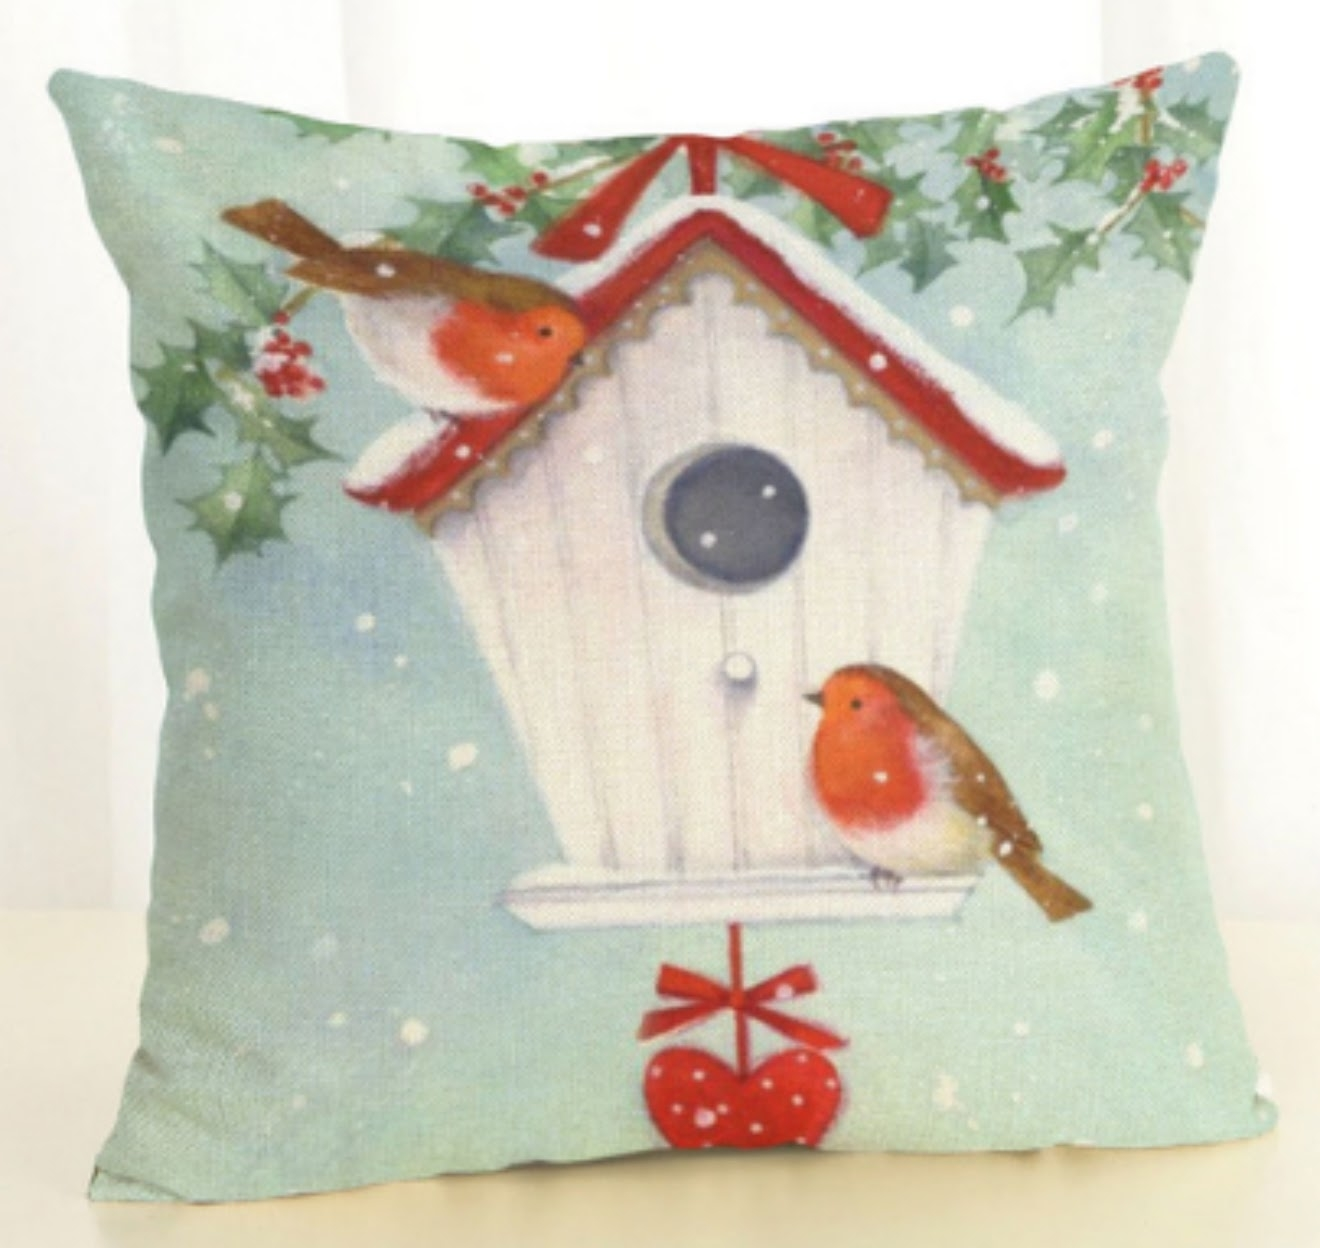 BUY 2 GET 1 Free Pretty Christmas Pillow Covers - Large Birdhouse